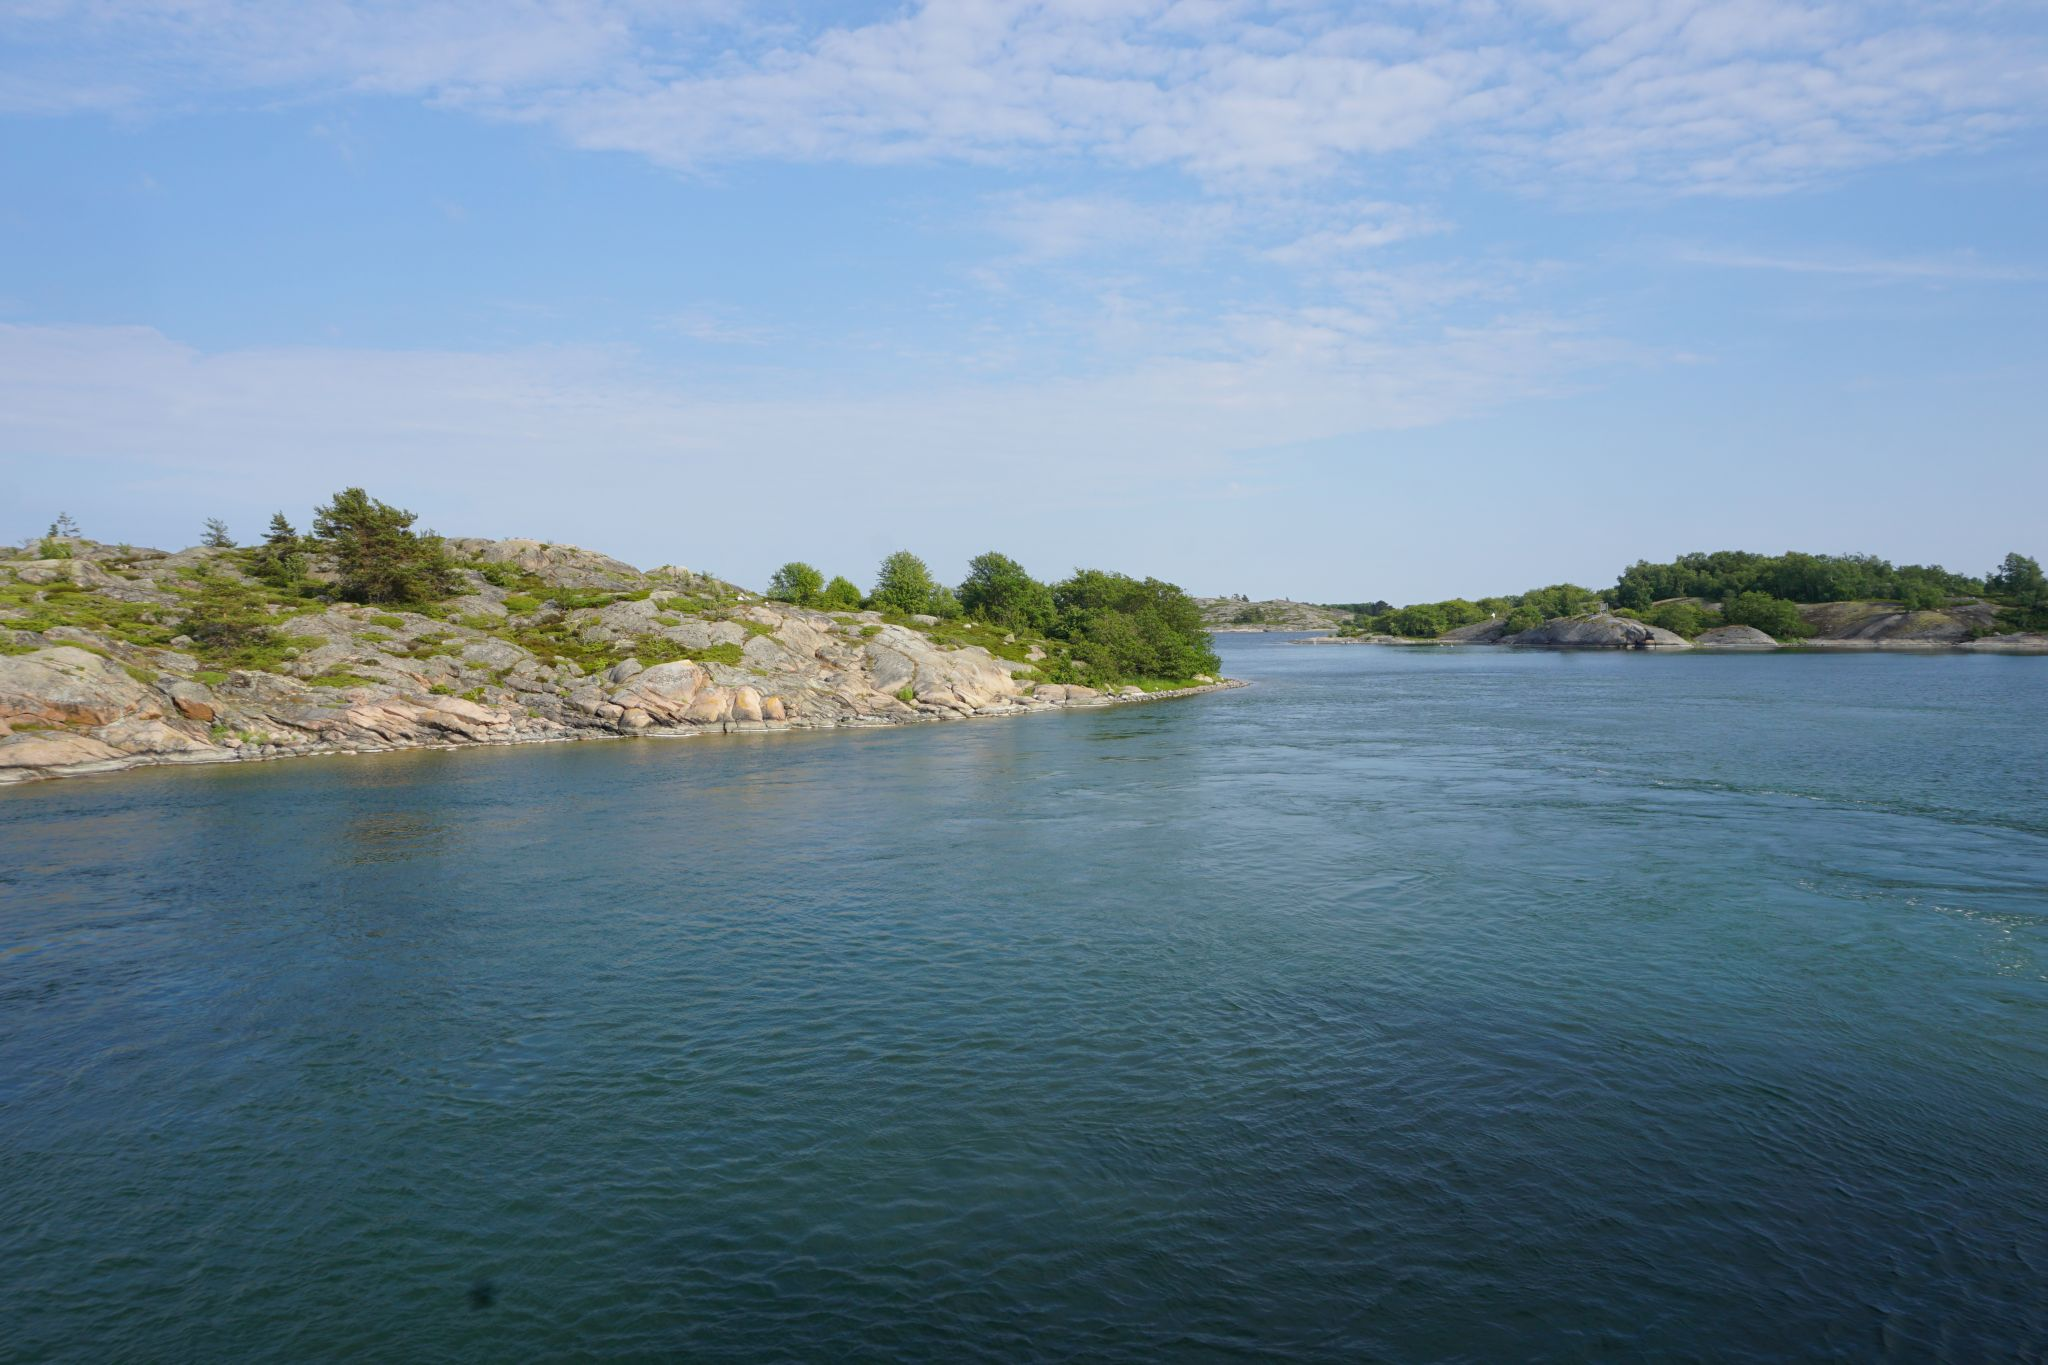 Beautiful archipelago views from M/S Eivor near the island of Aspö in Southwest Finland